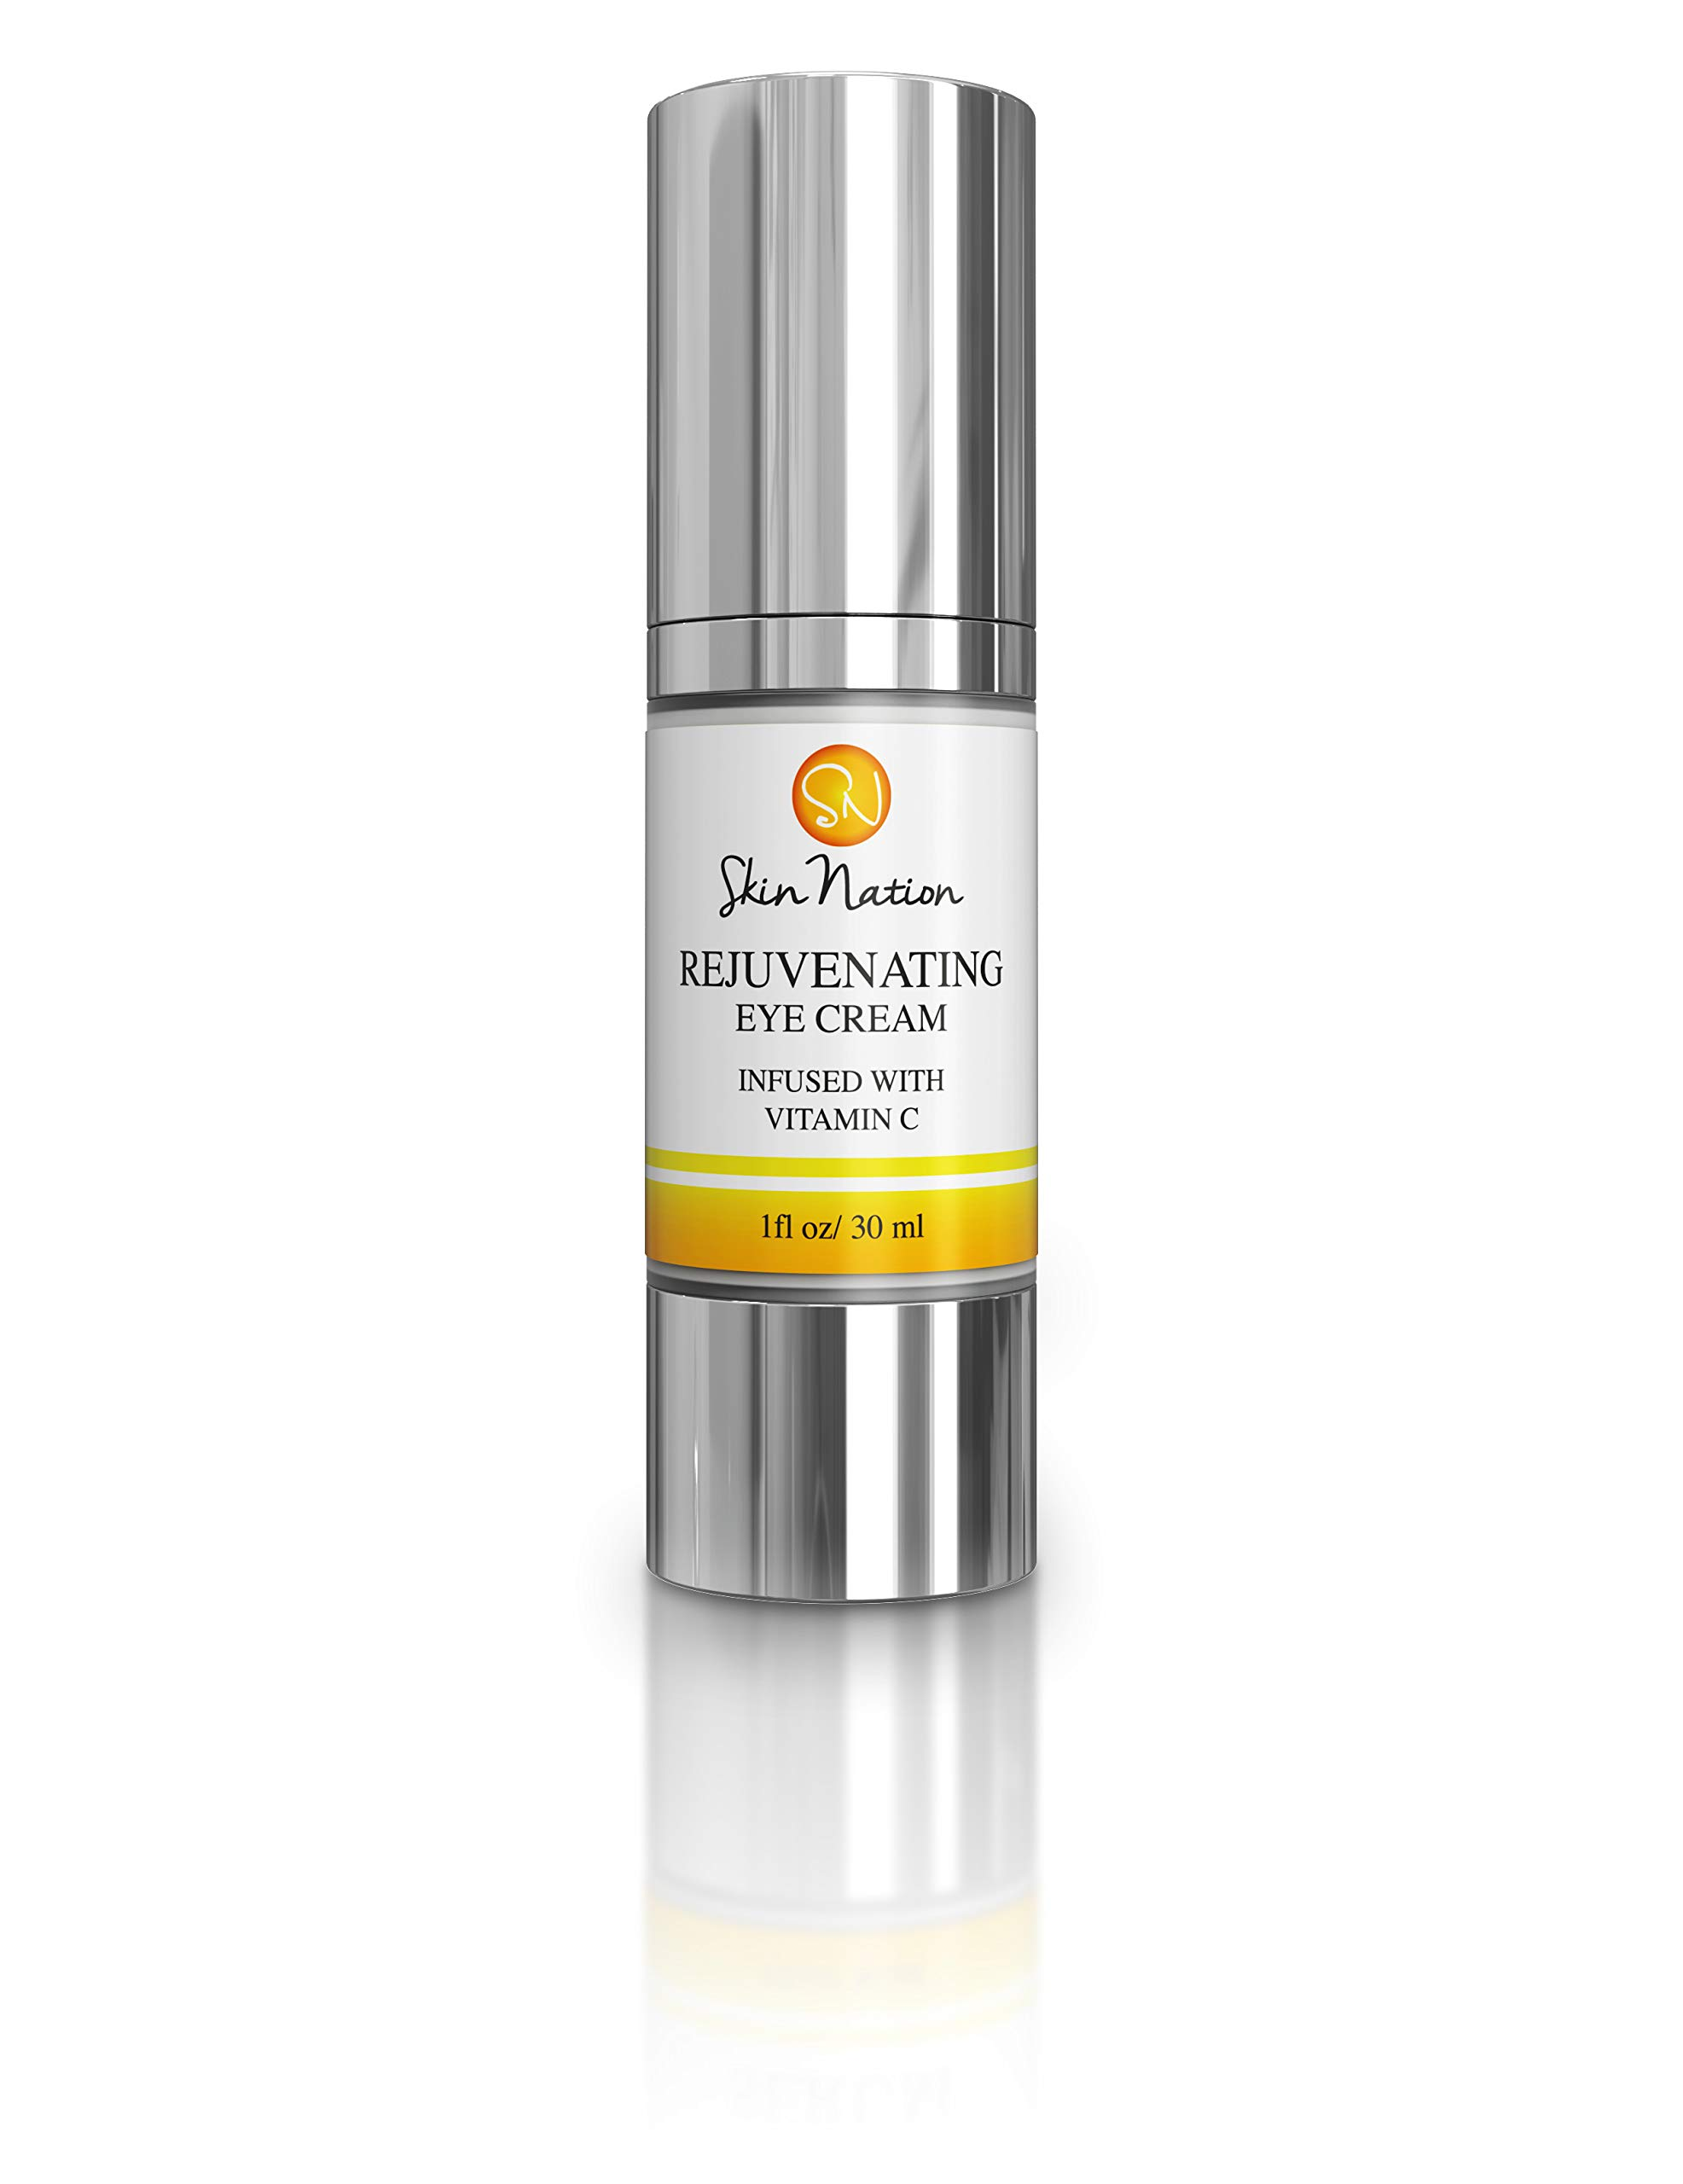 Rejuvenating Eye Cream | Anti Aging Eye Cream - Anti Wrinkle and Antioxidants | with Organic